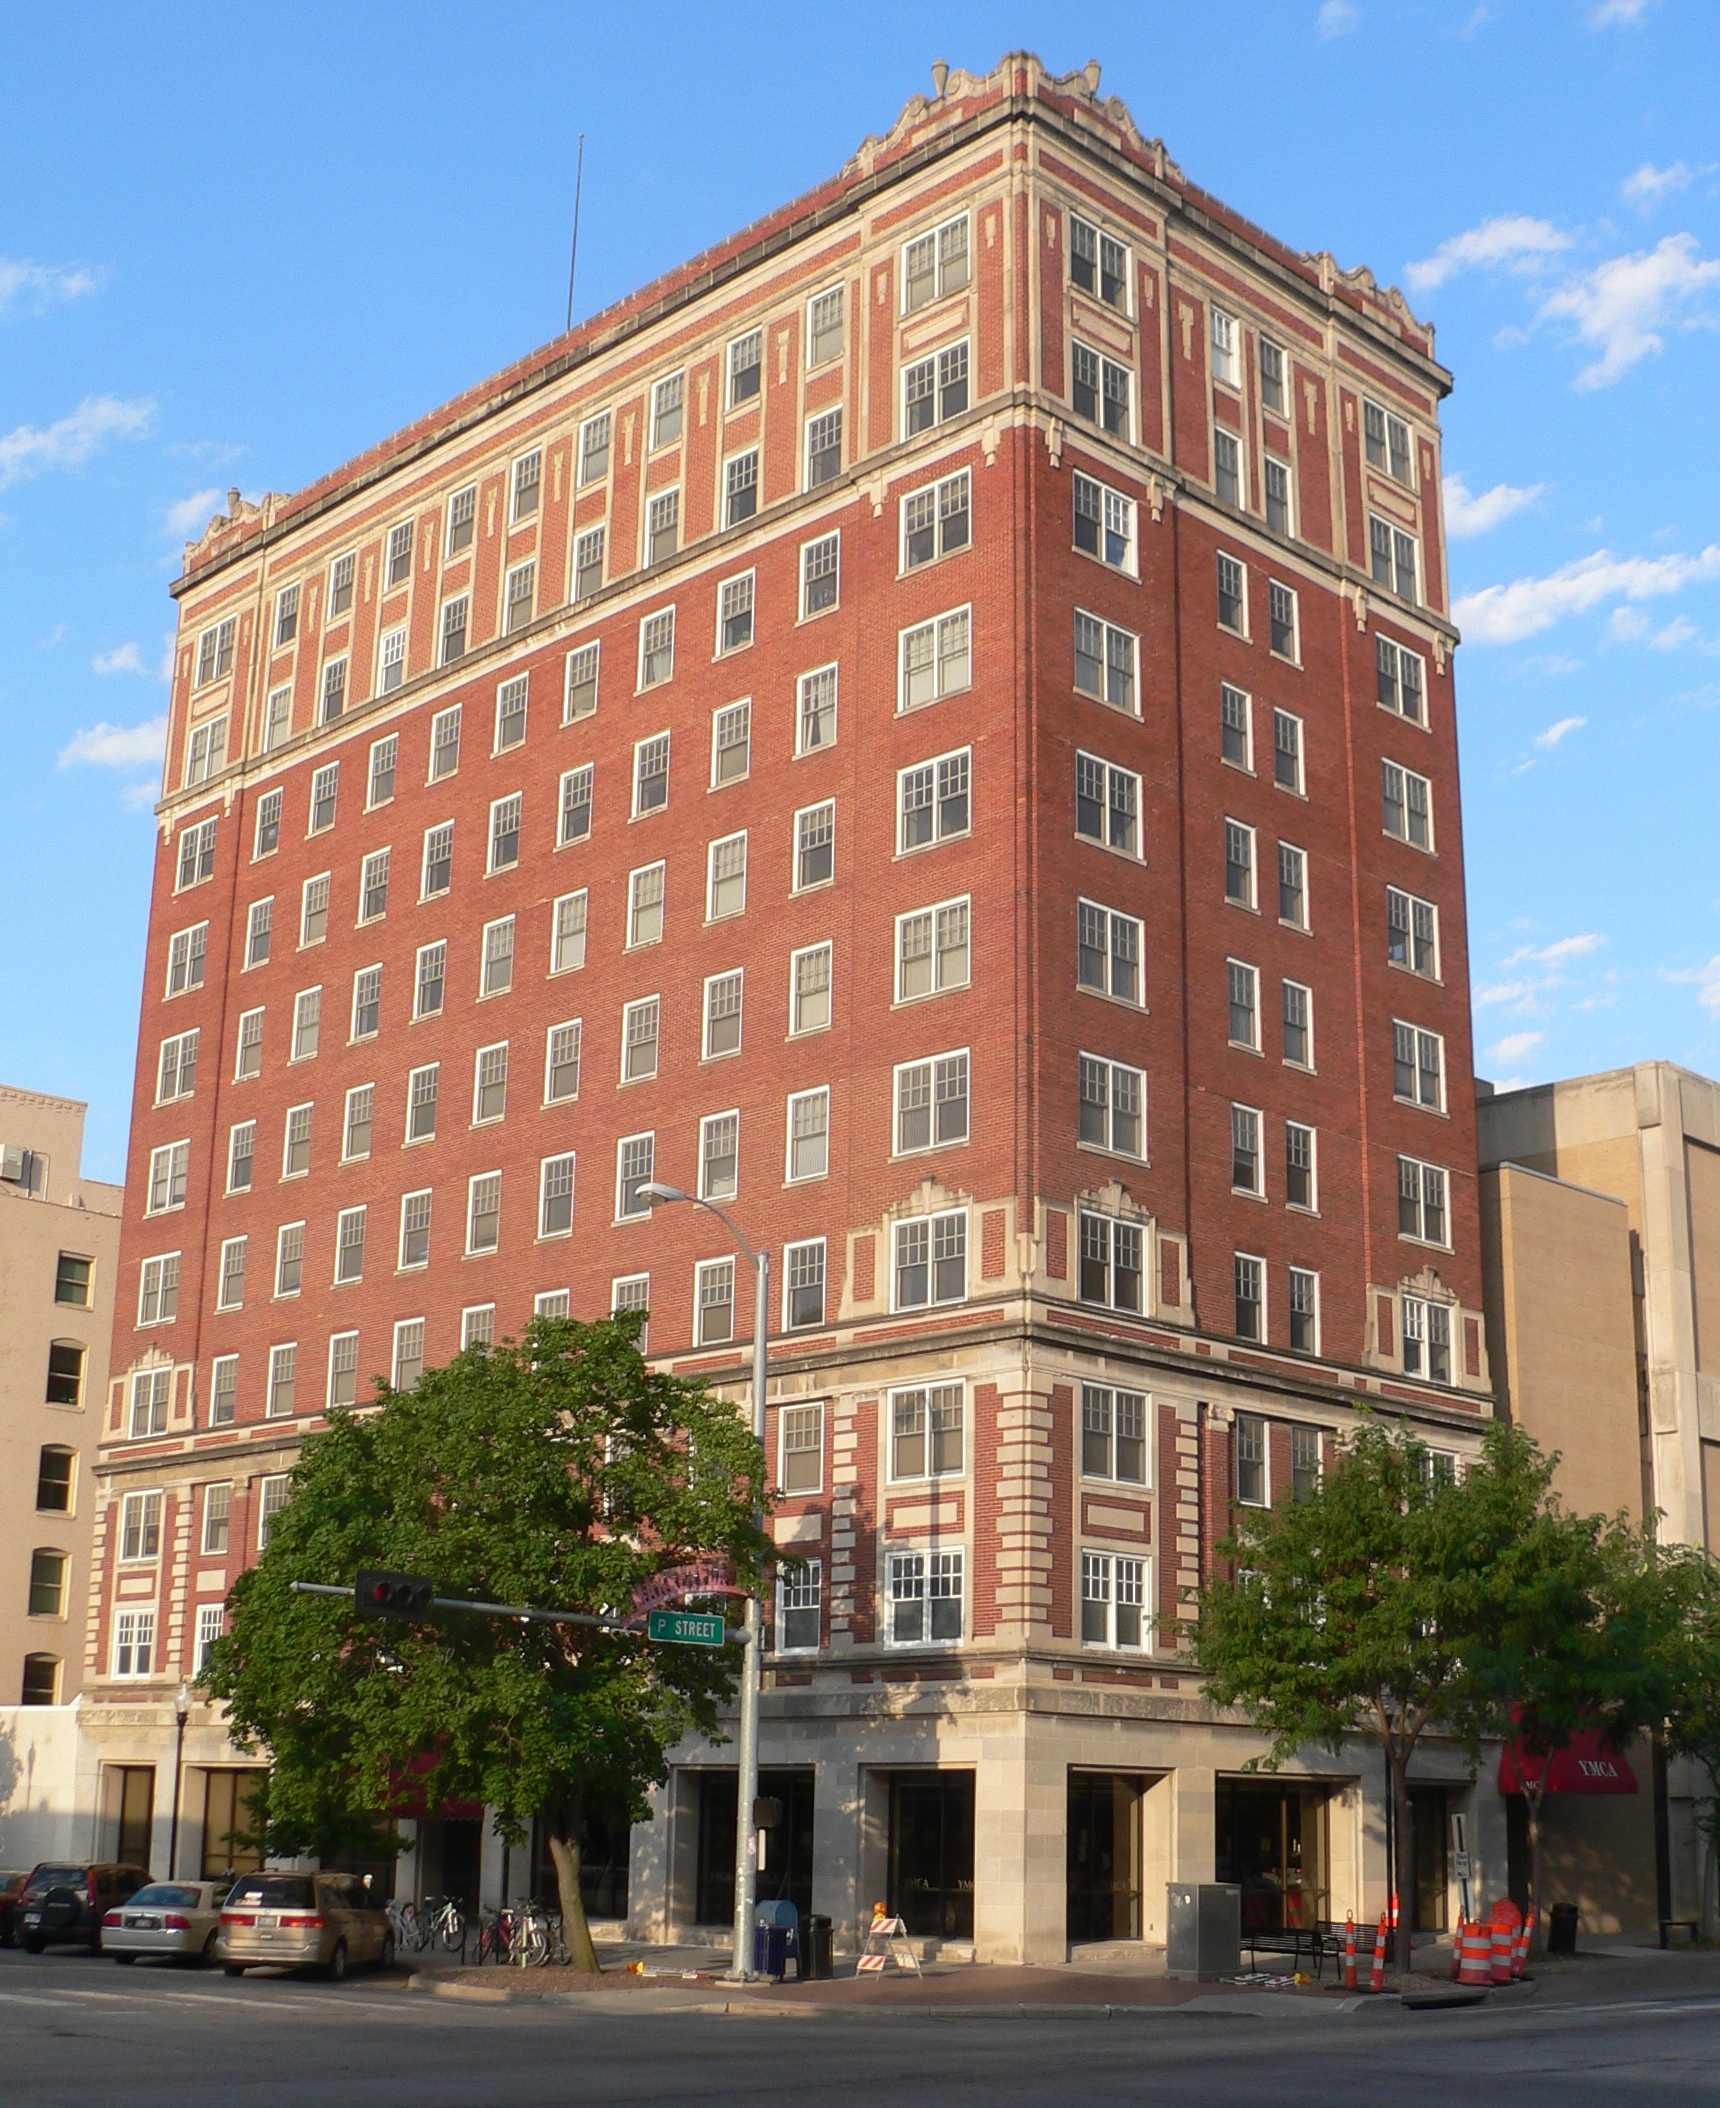 south coupons ne nebraska suites holiday com freehotelcoupons hotel express lincoln inn for extended stay hotels